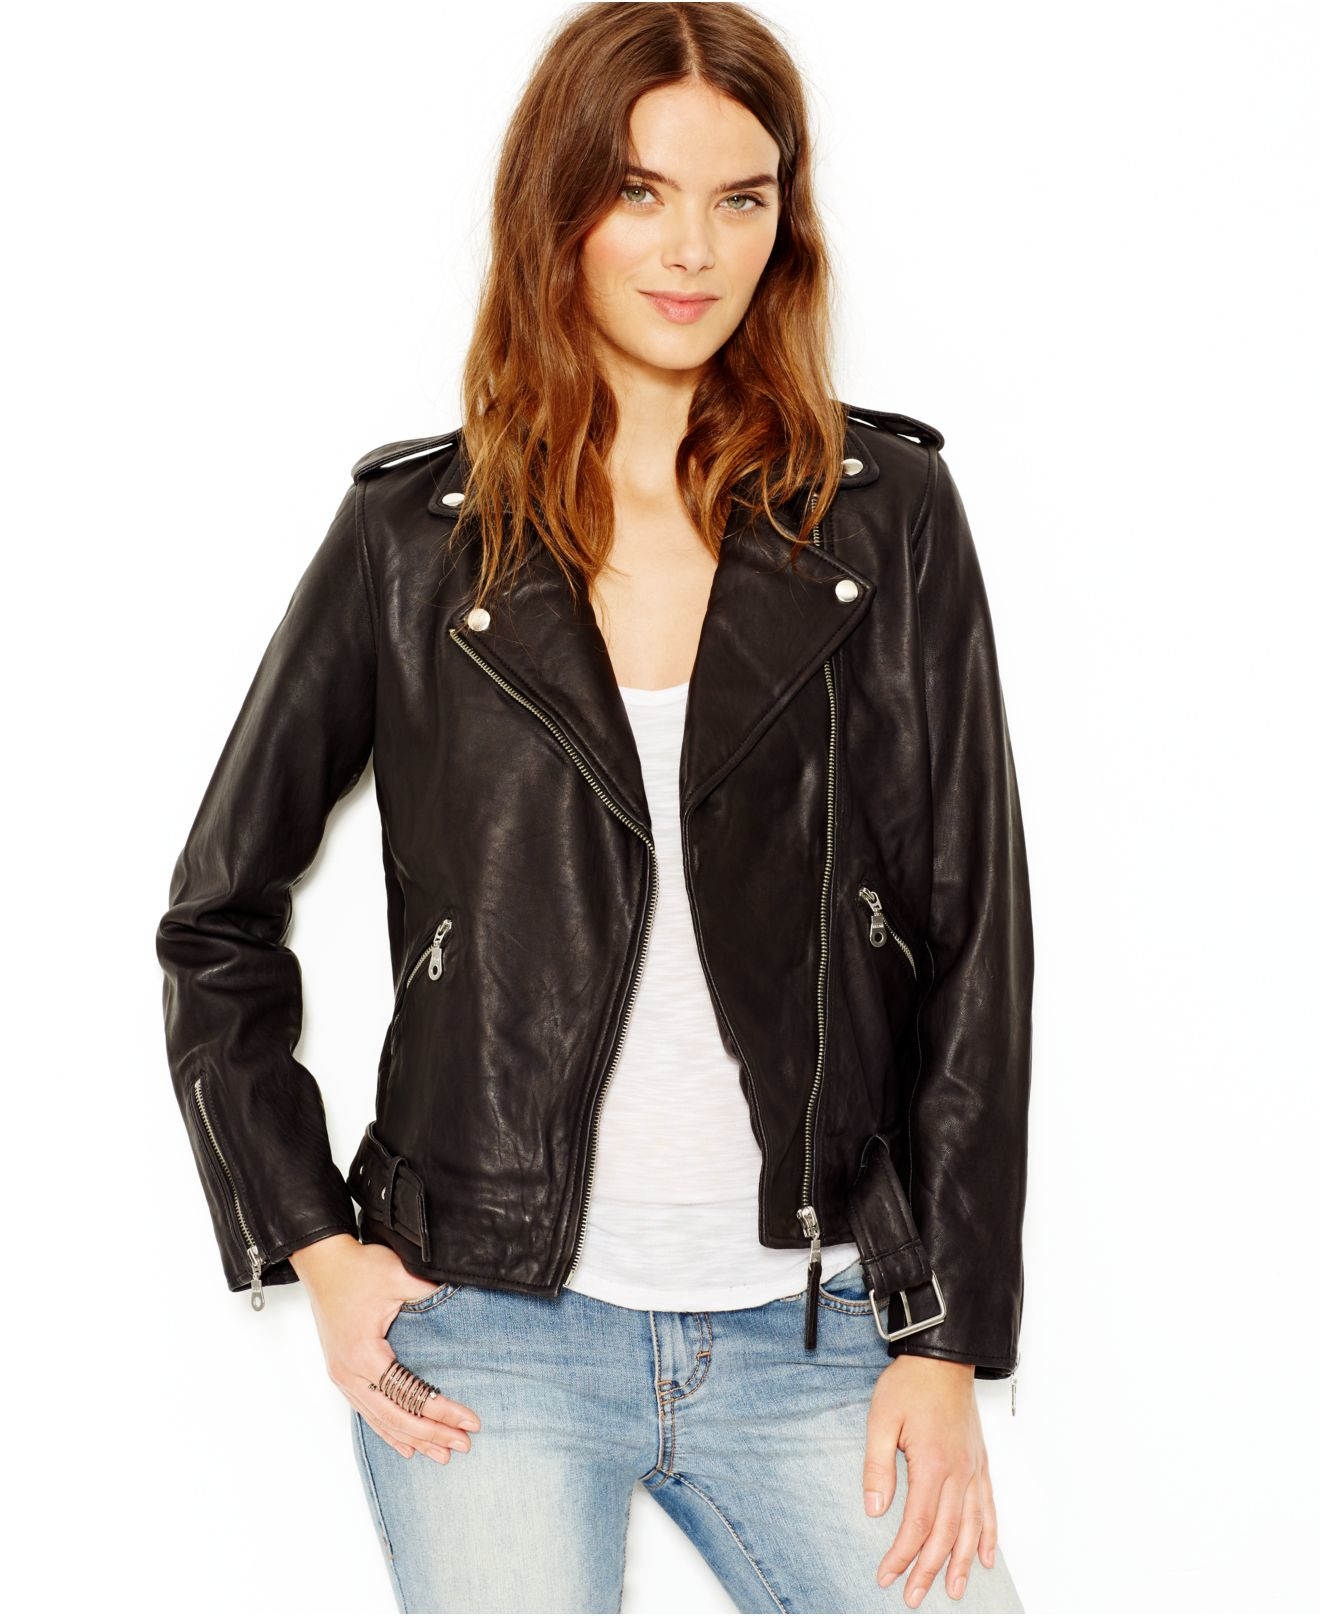 Lucky brand Lucky Brand Leather Moto Jacket in Black